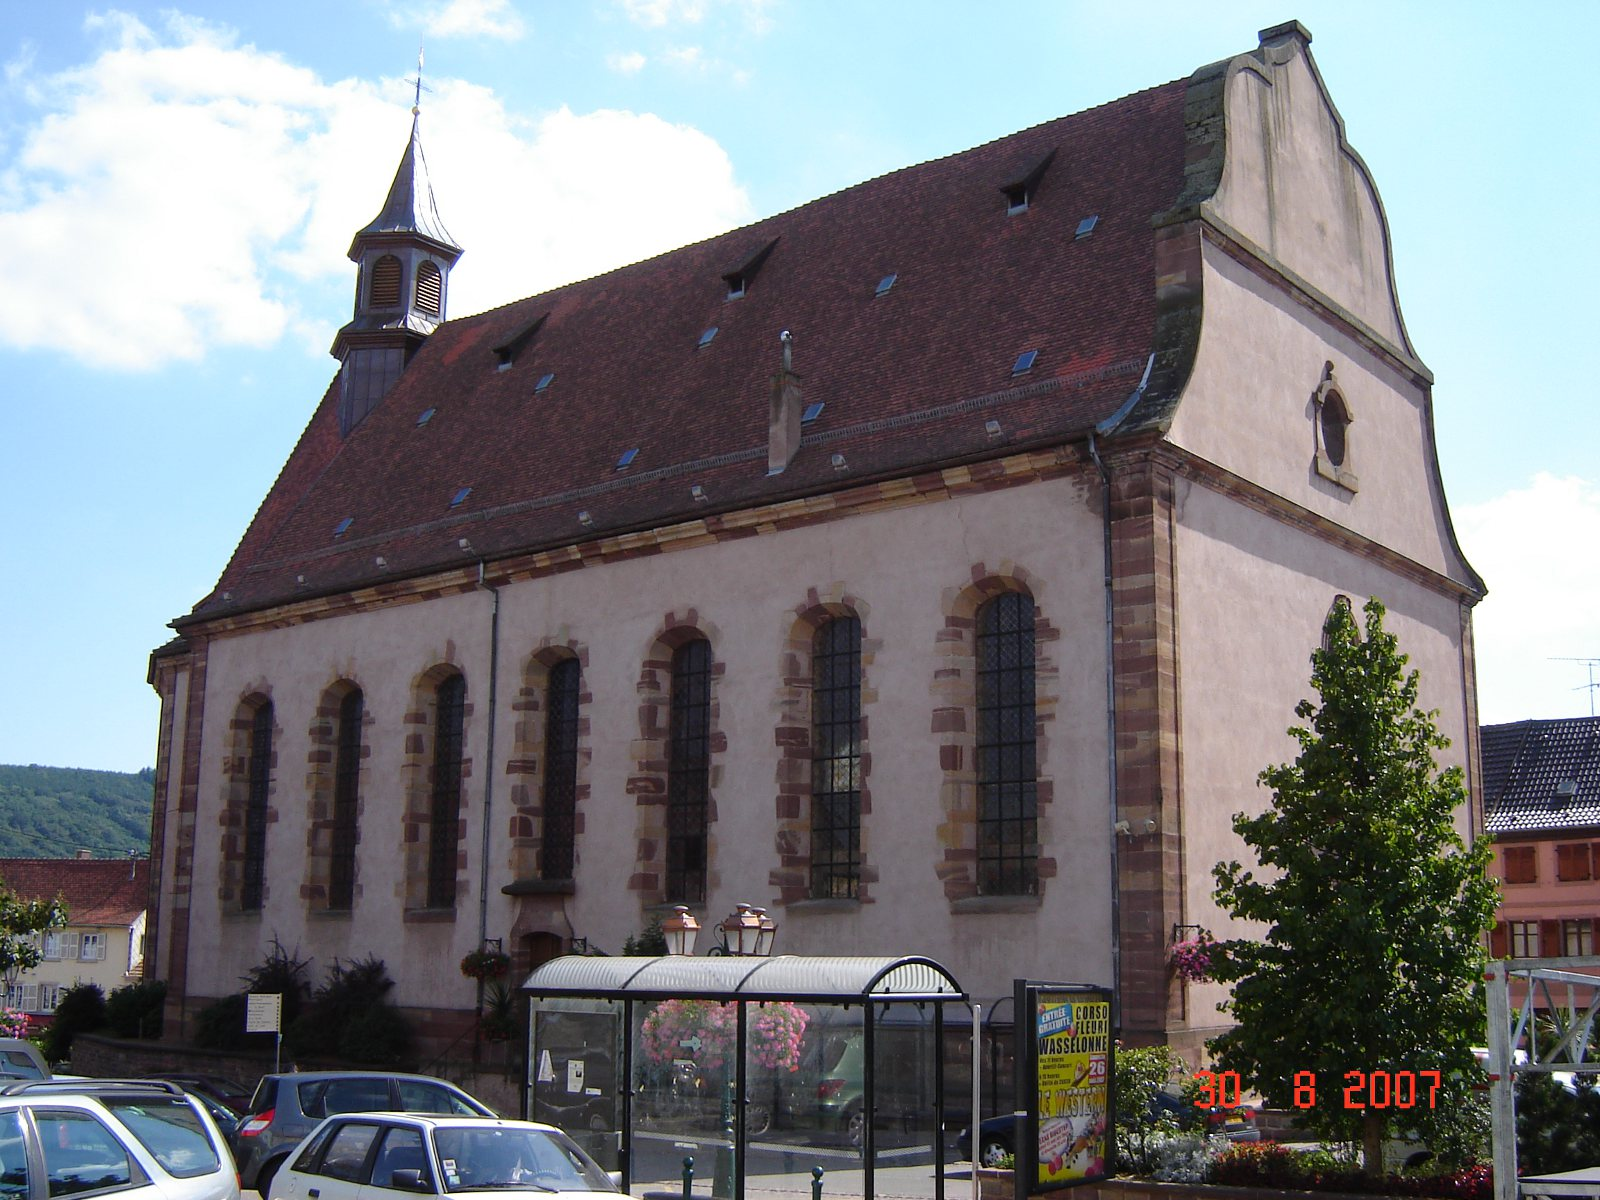 https://apps.tourisme-alsace.info/photos/wangenbourg2/photos/255002097_1.JPG